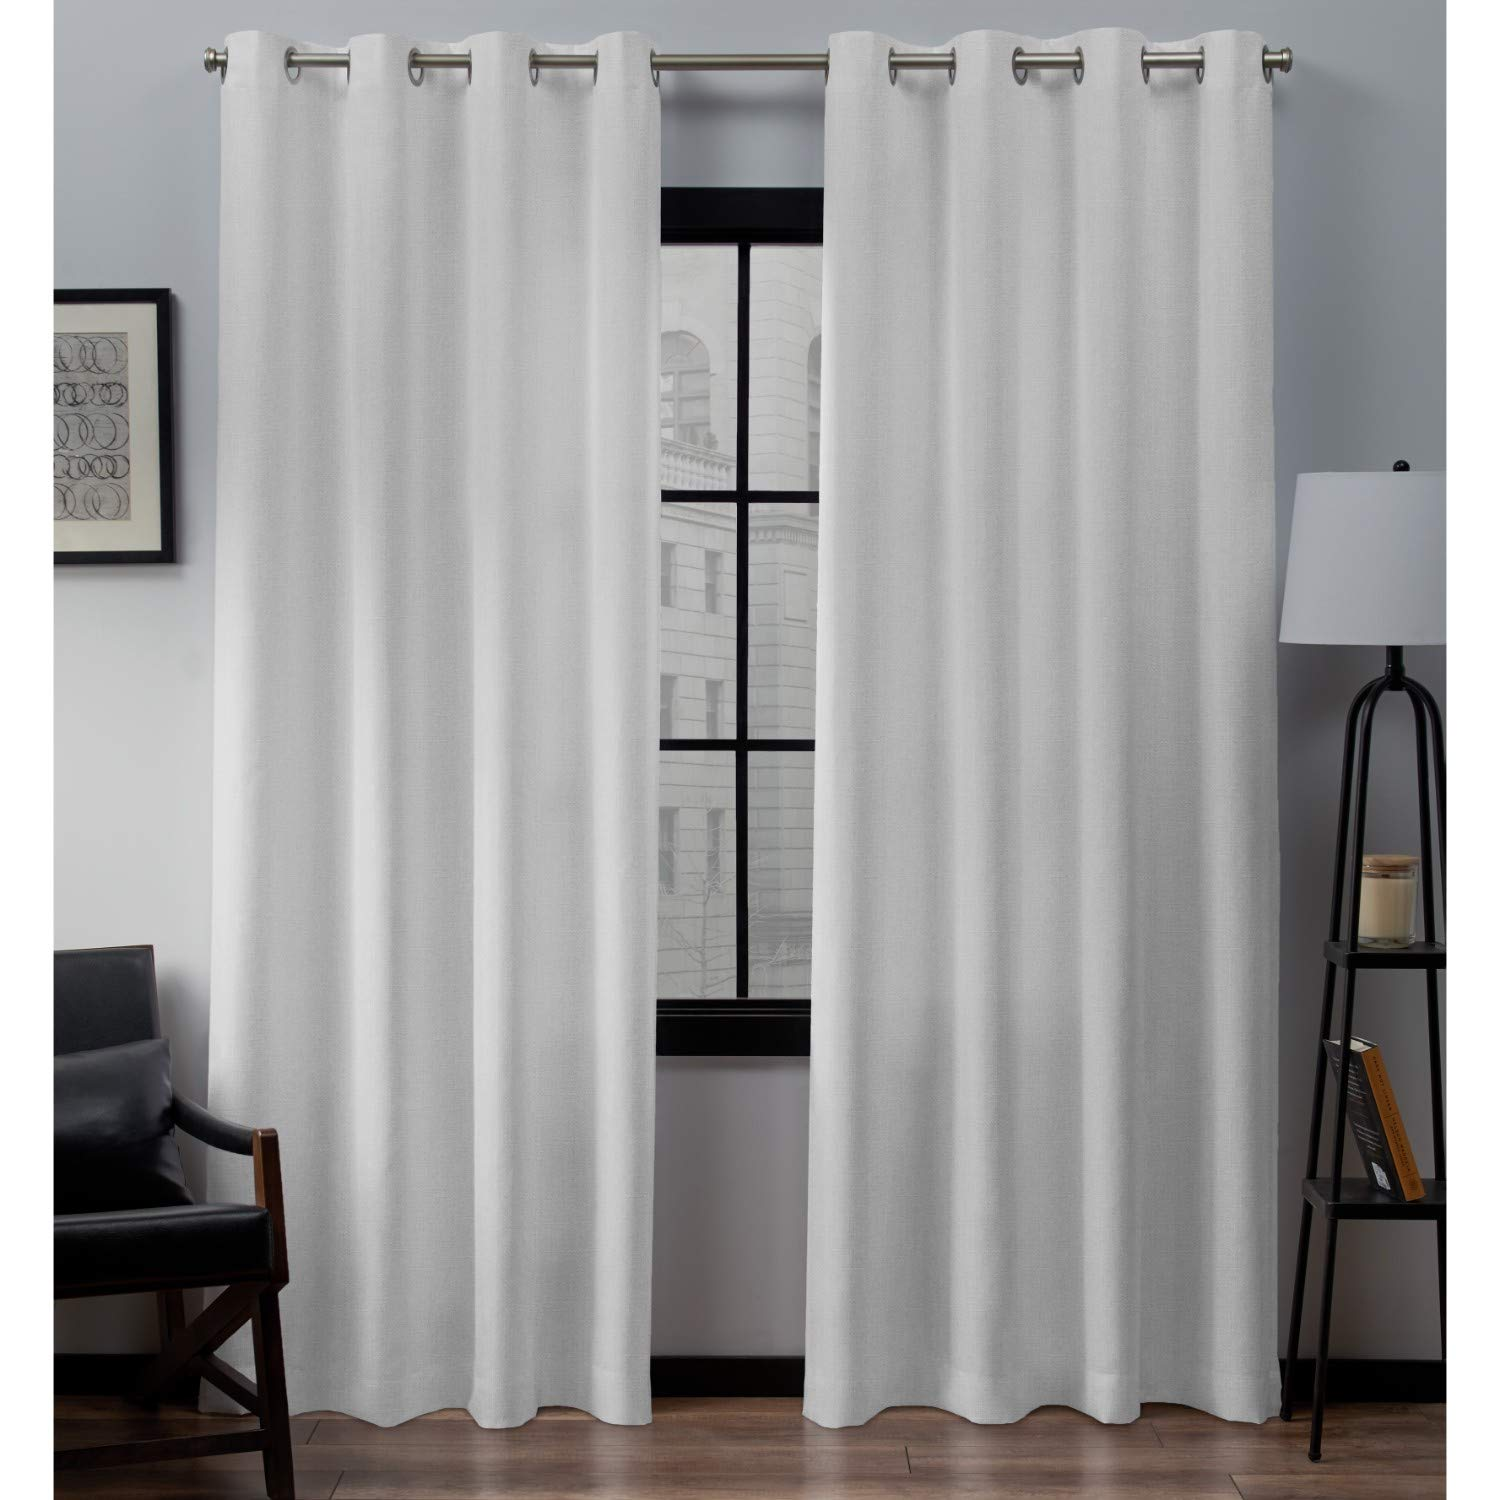 Amazon.com: Exclusive Home Curtains Loha Linen Window Curtain Panel Pair  With Grommet Top 54x108 Winter White 2 Piece: Home U0026 Kitchen